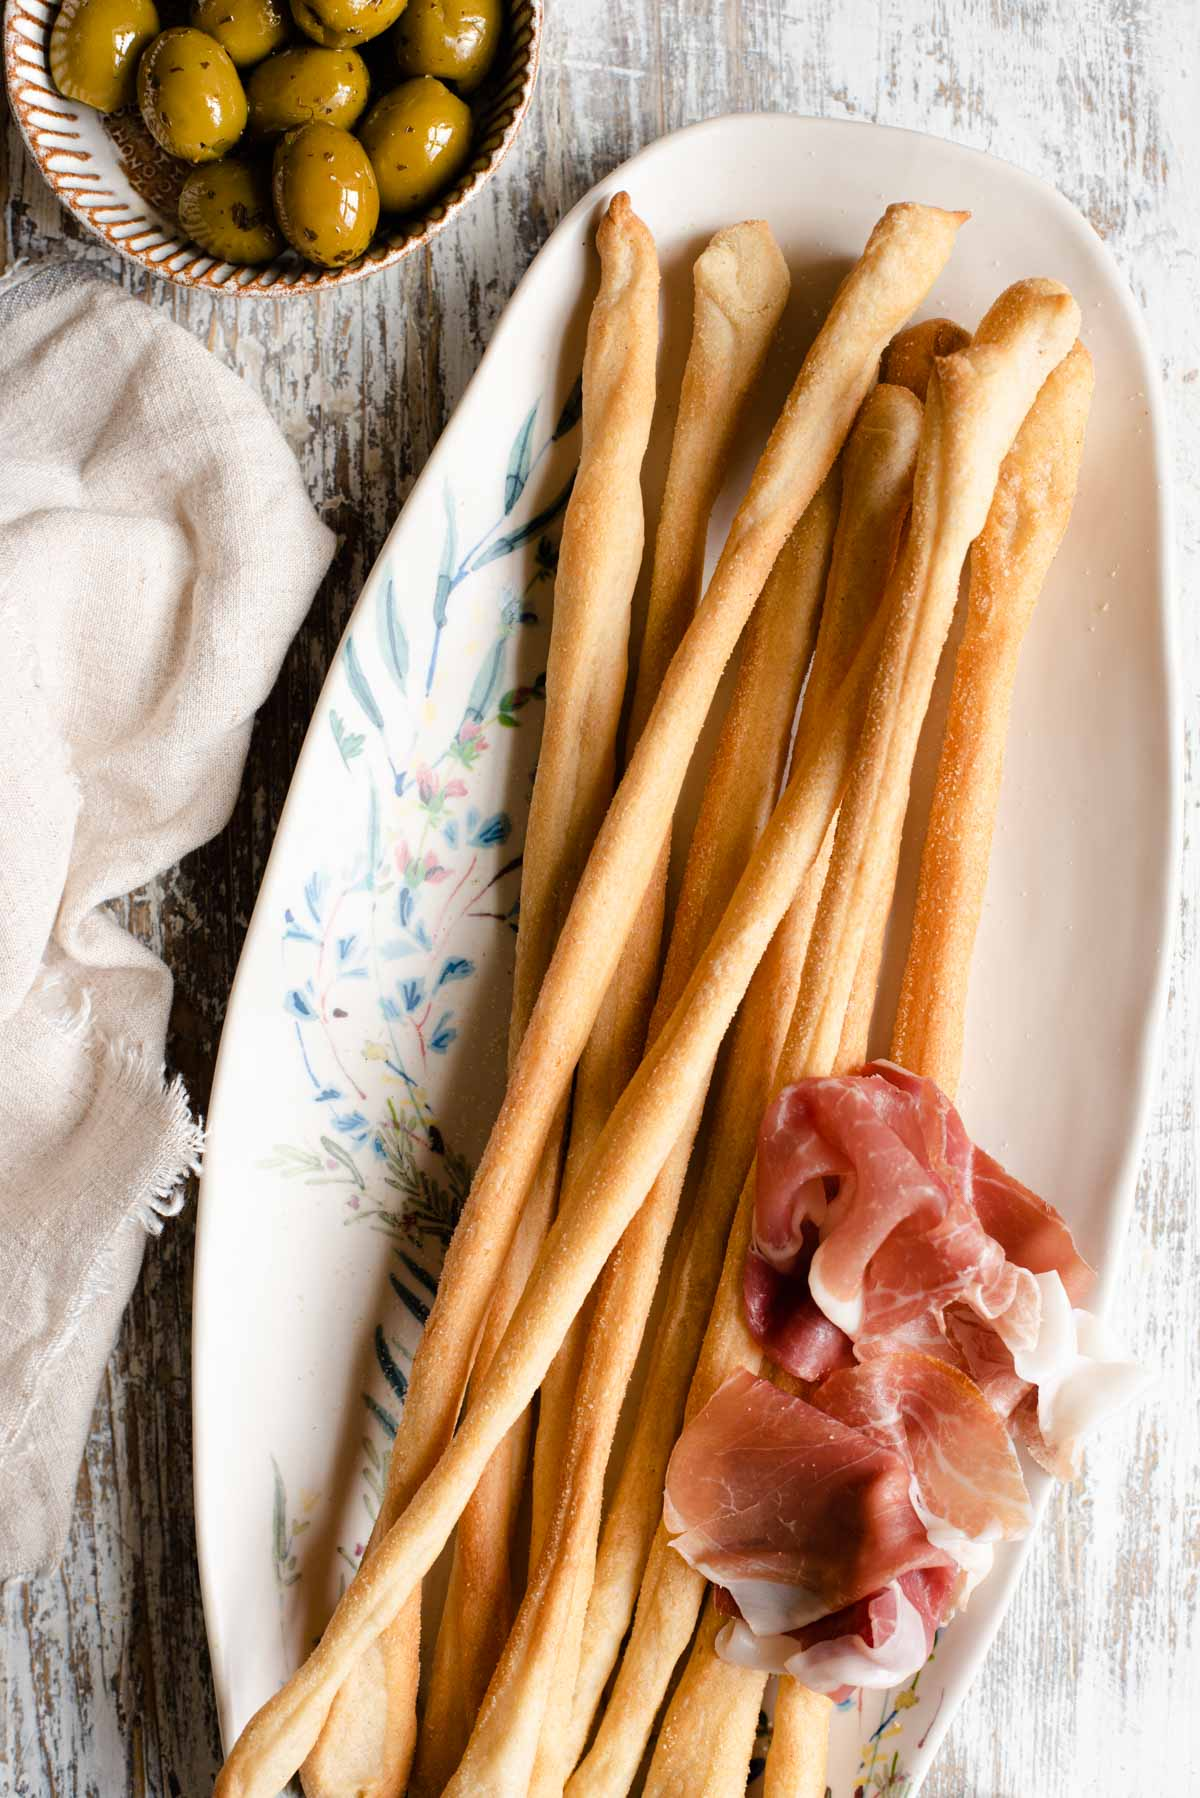 Grissini Italian Breadsticks Inside The Rustic Kitchen